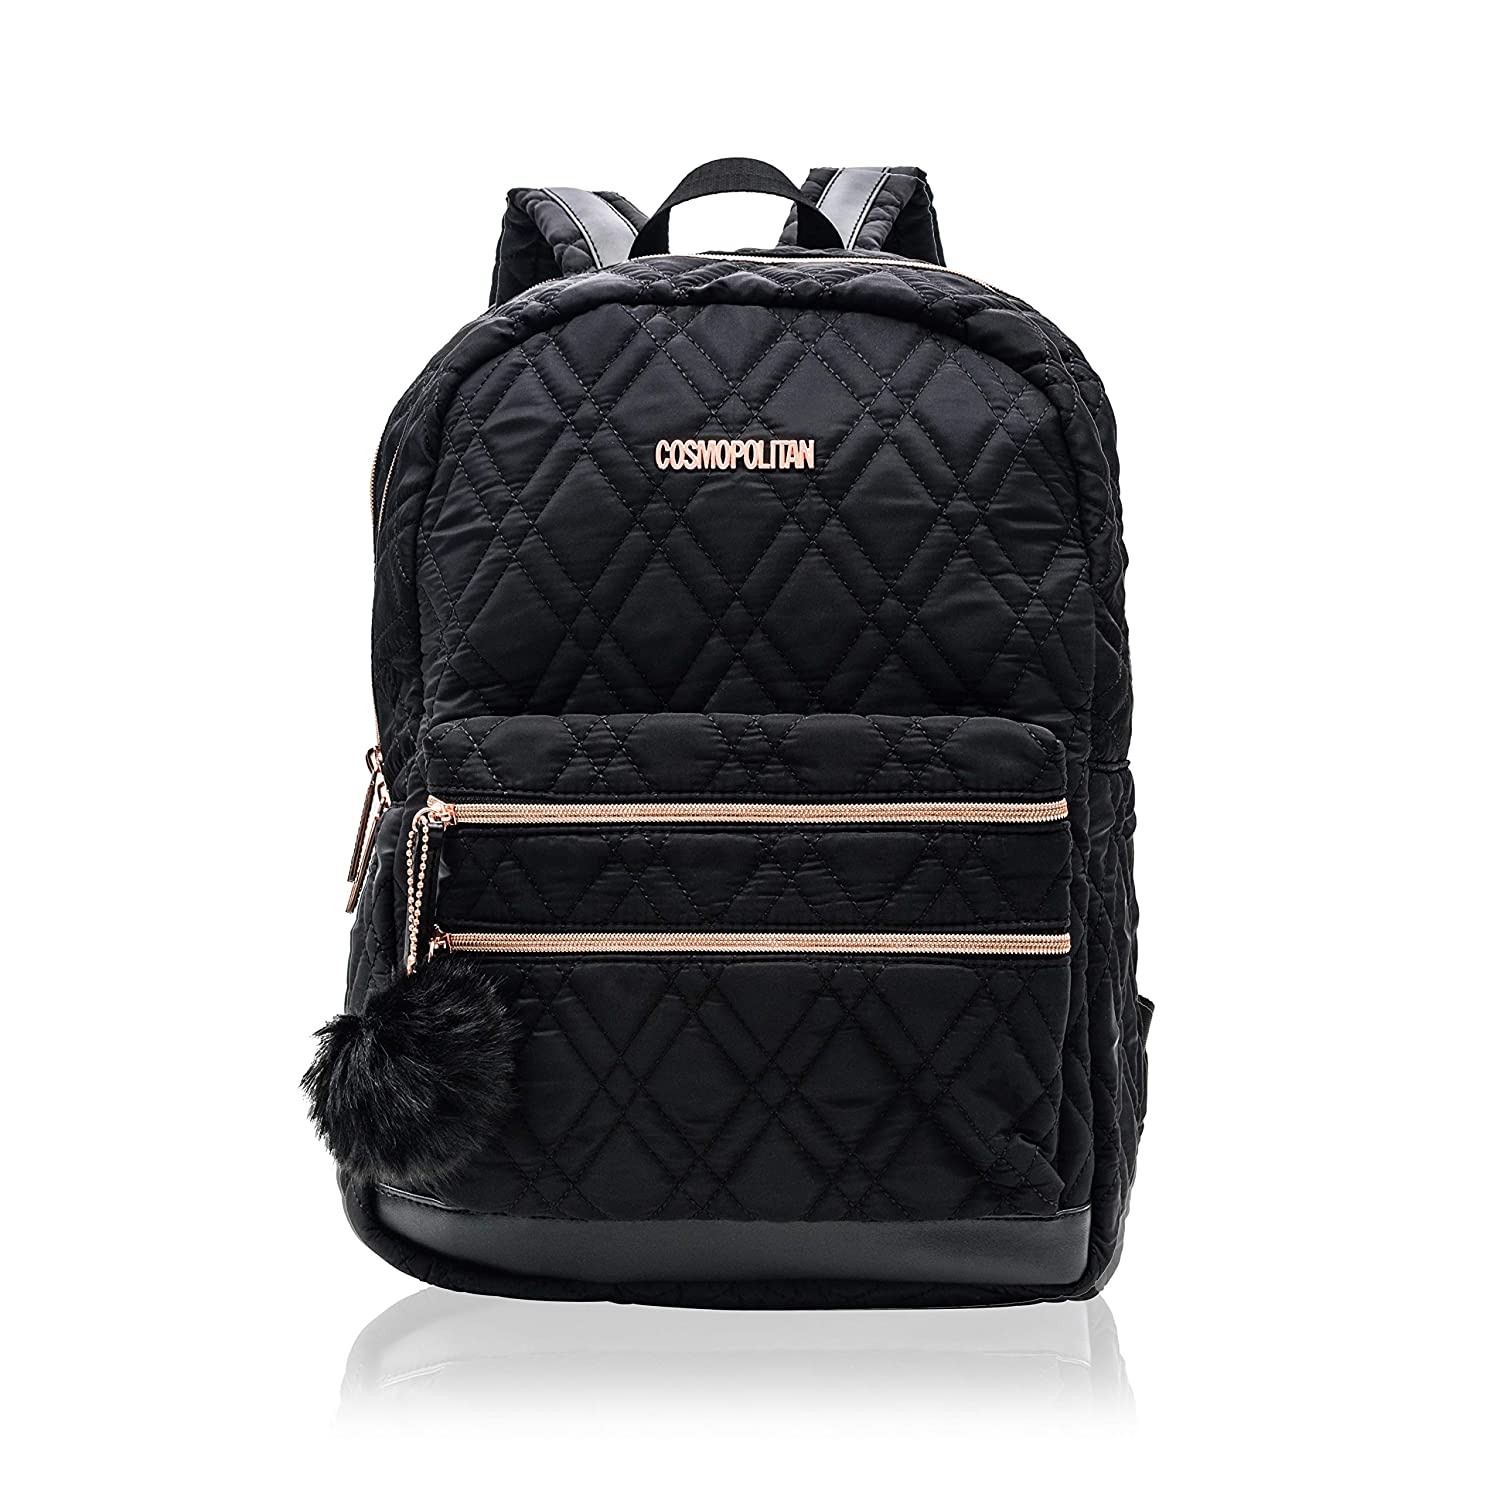 16ff95fb0 Cosmopolitan Women's Quilted Travel Backpack with Rose Gold Hardwear (Black)